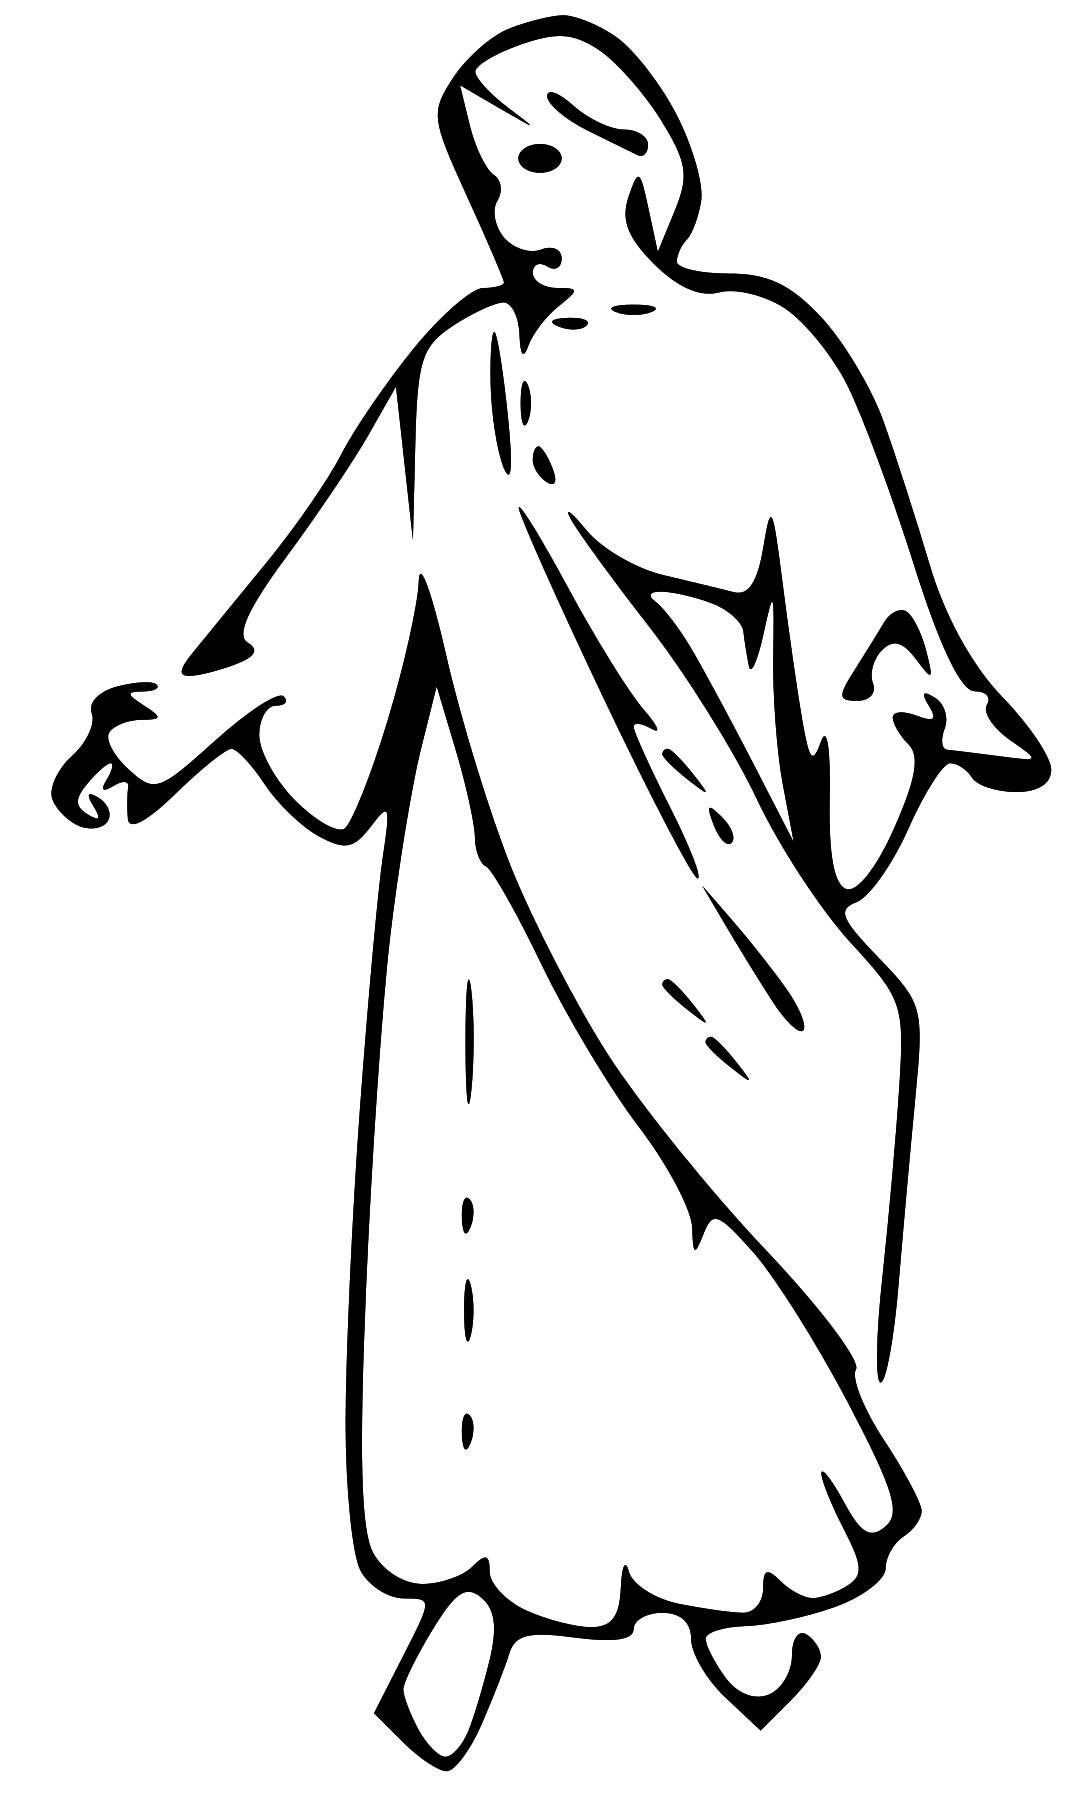 3216 Lds free clipart.